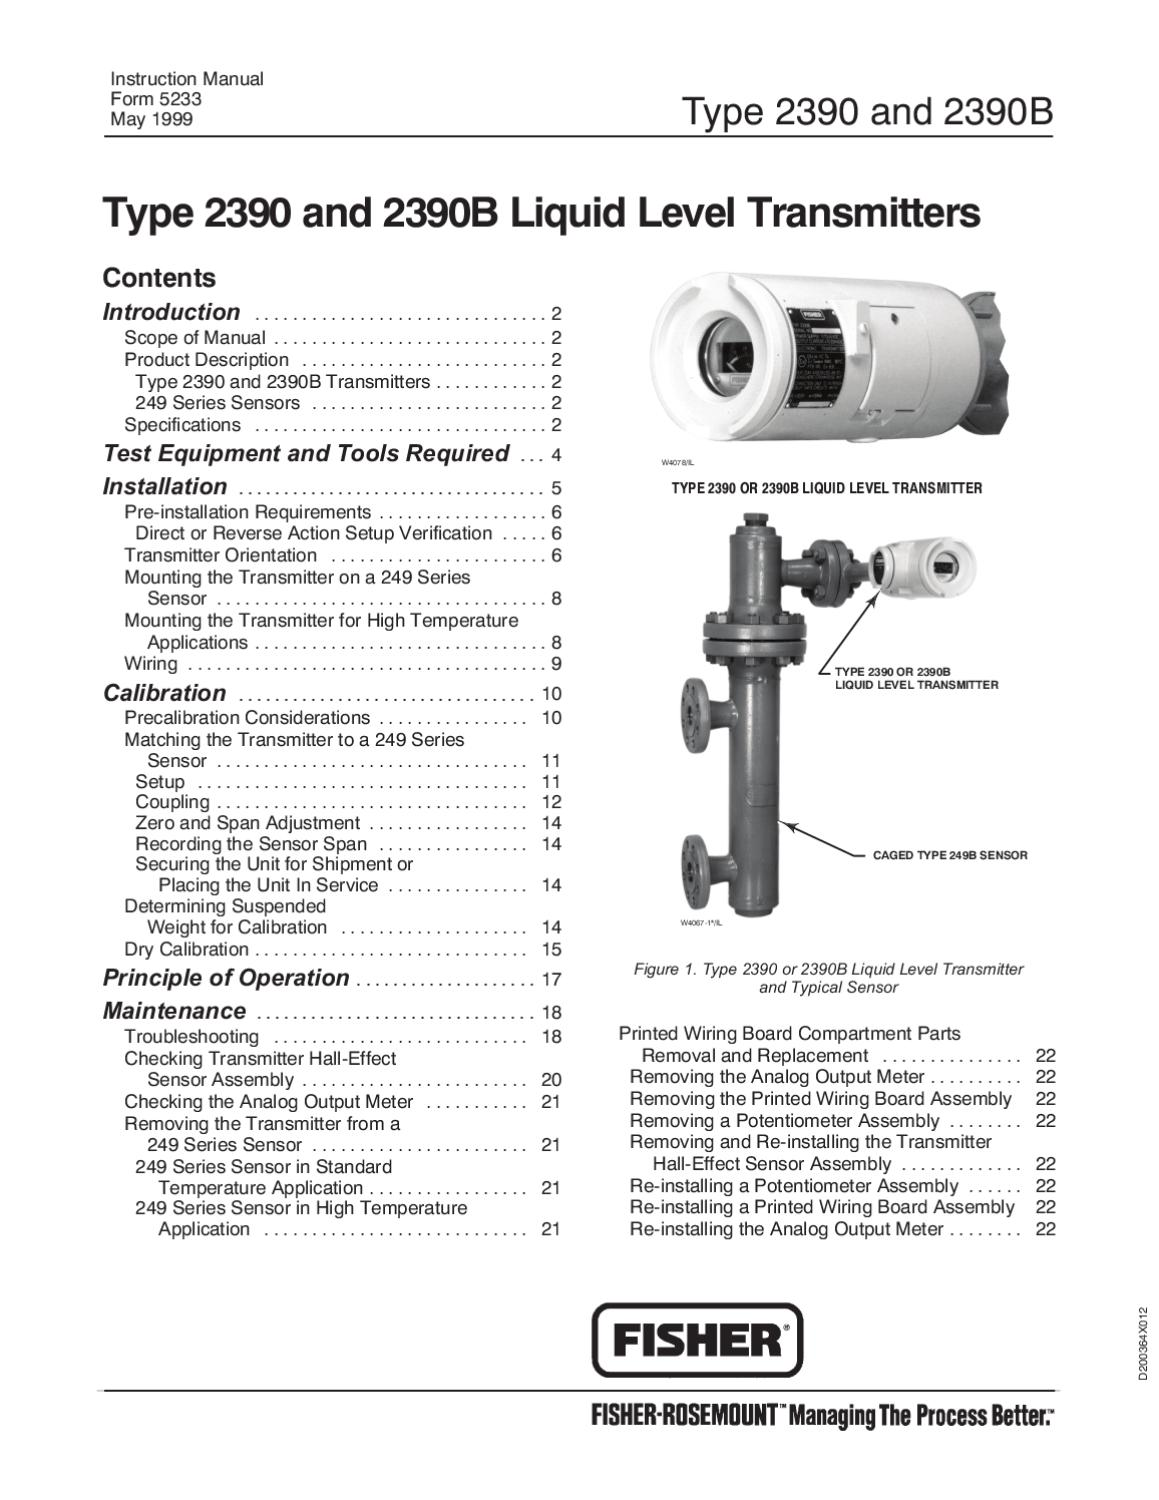 23902390b Transmitter Instruction Manual By Rmc Process Controls Hall Effect Current Sensor Wiring Filtration Inc Issuu